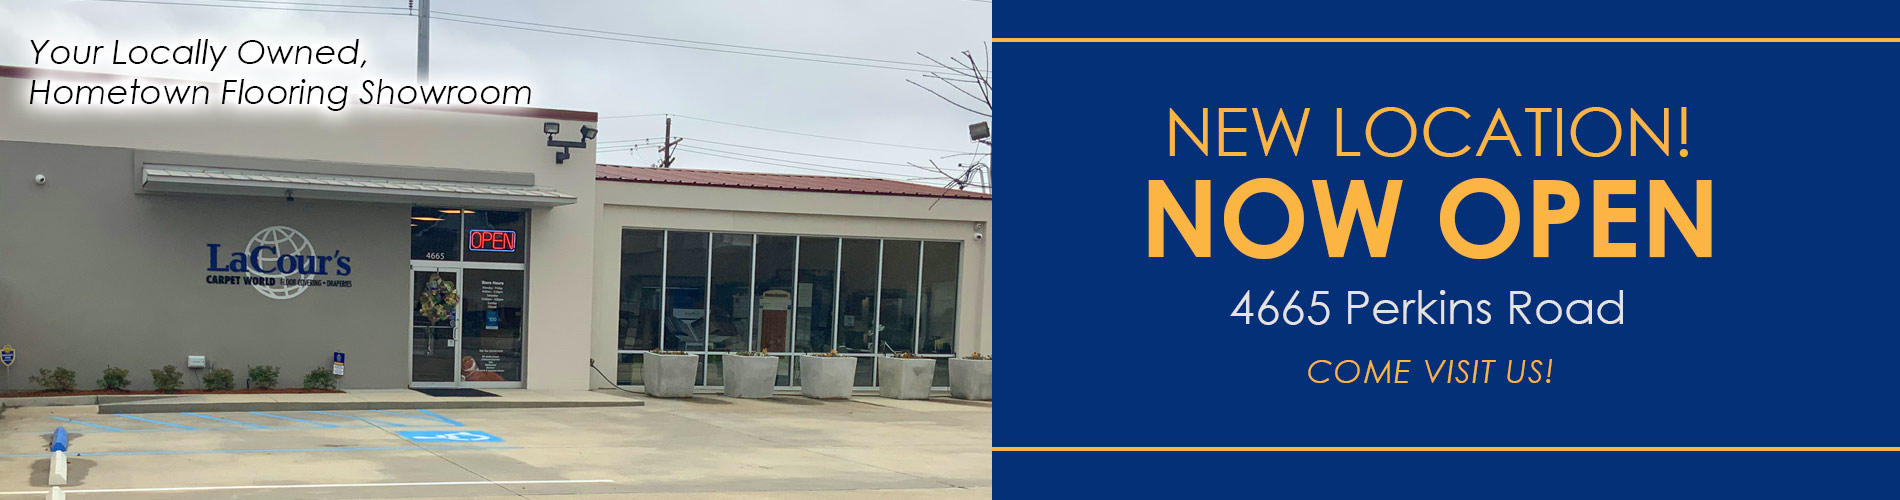 New Location! Now Open! 4665 Perkins Road - COME VISIT US!